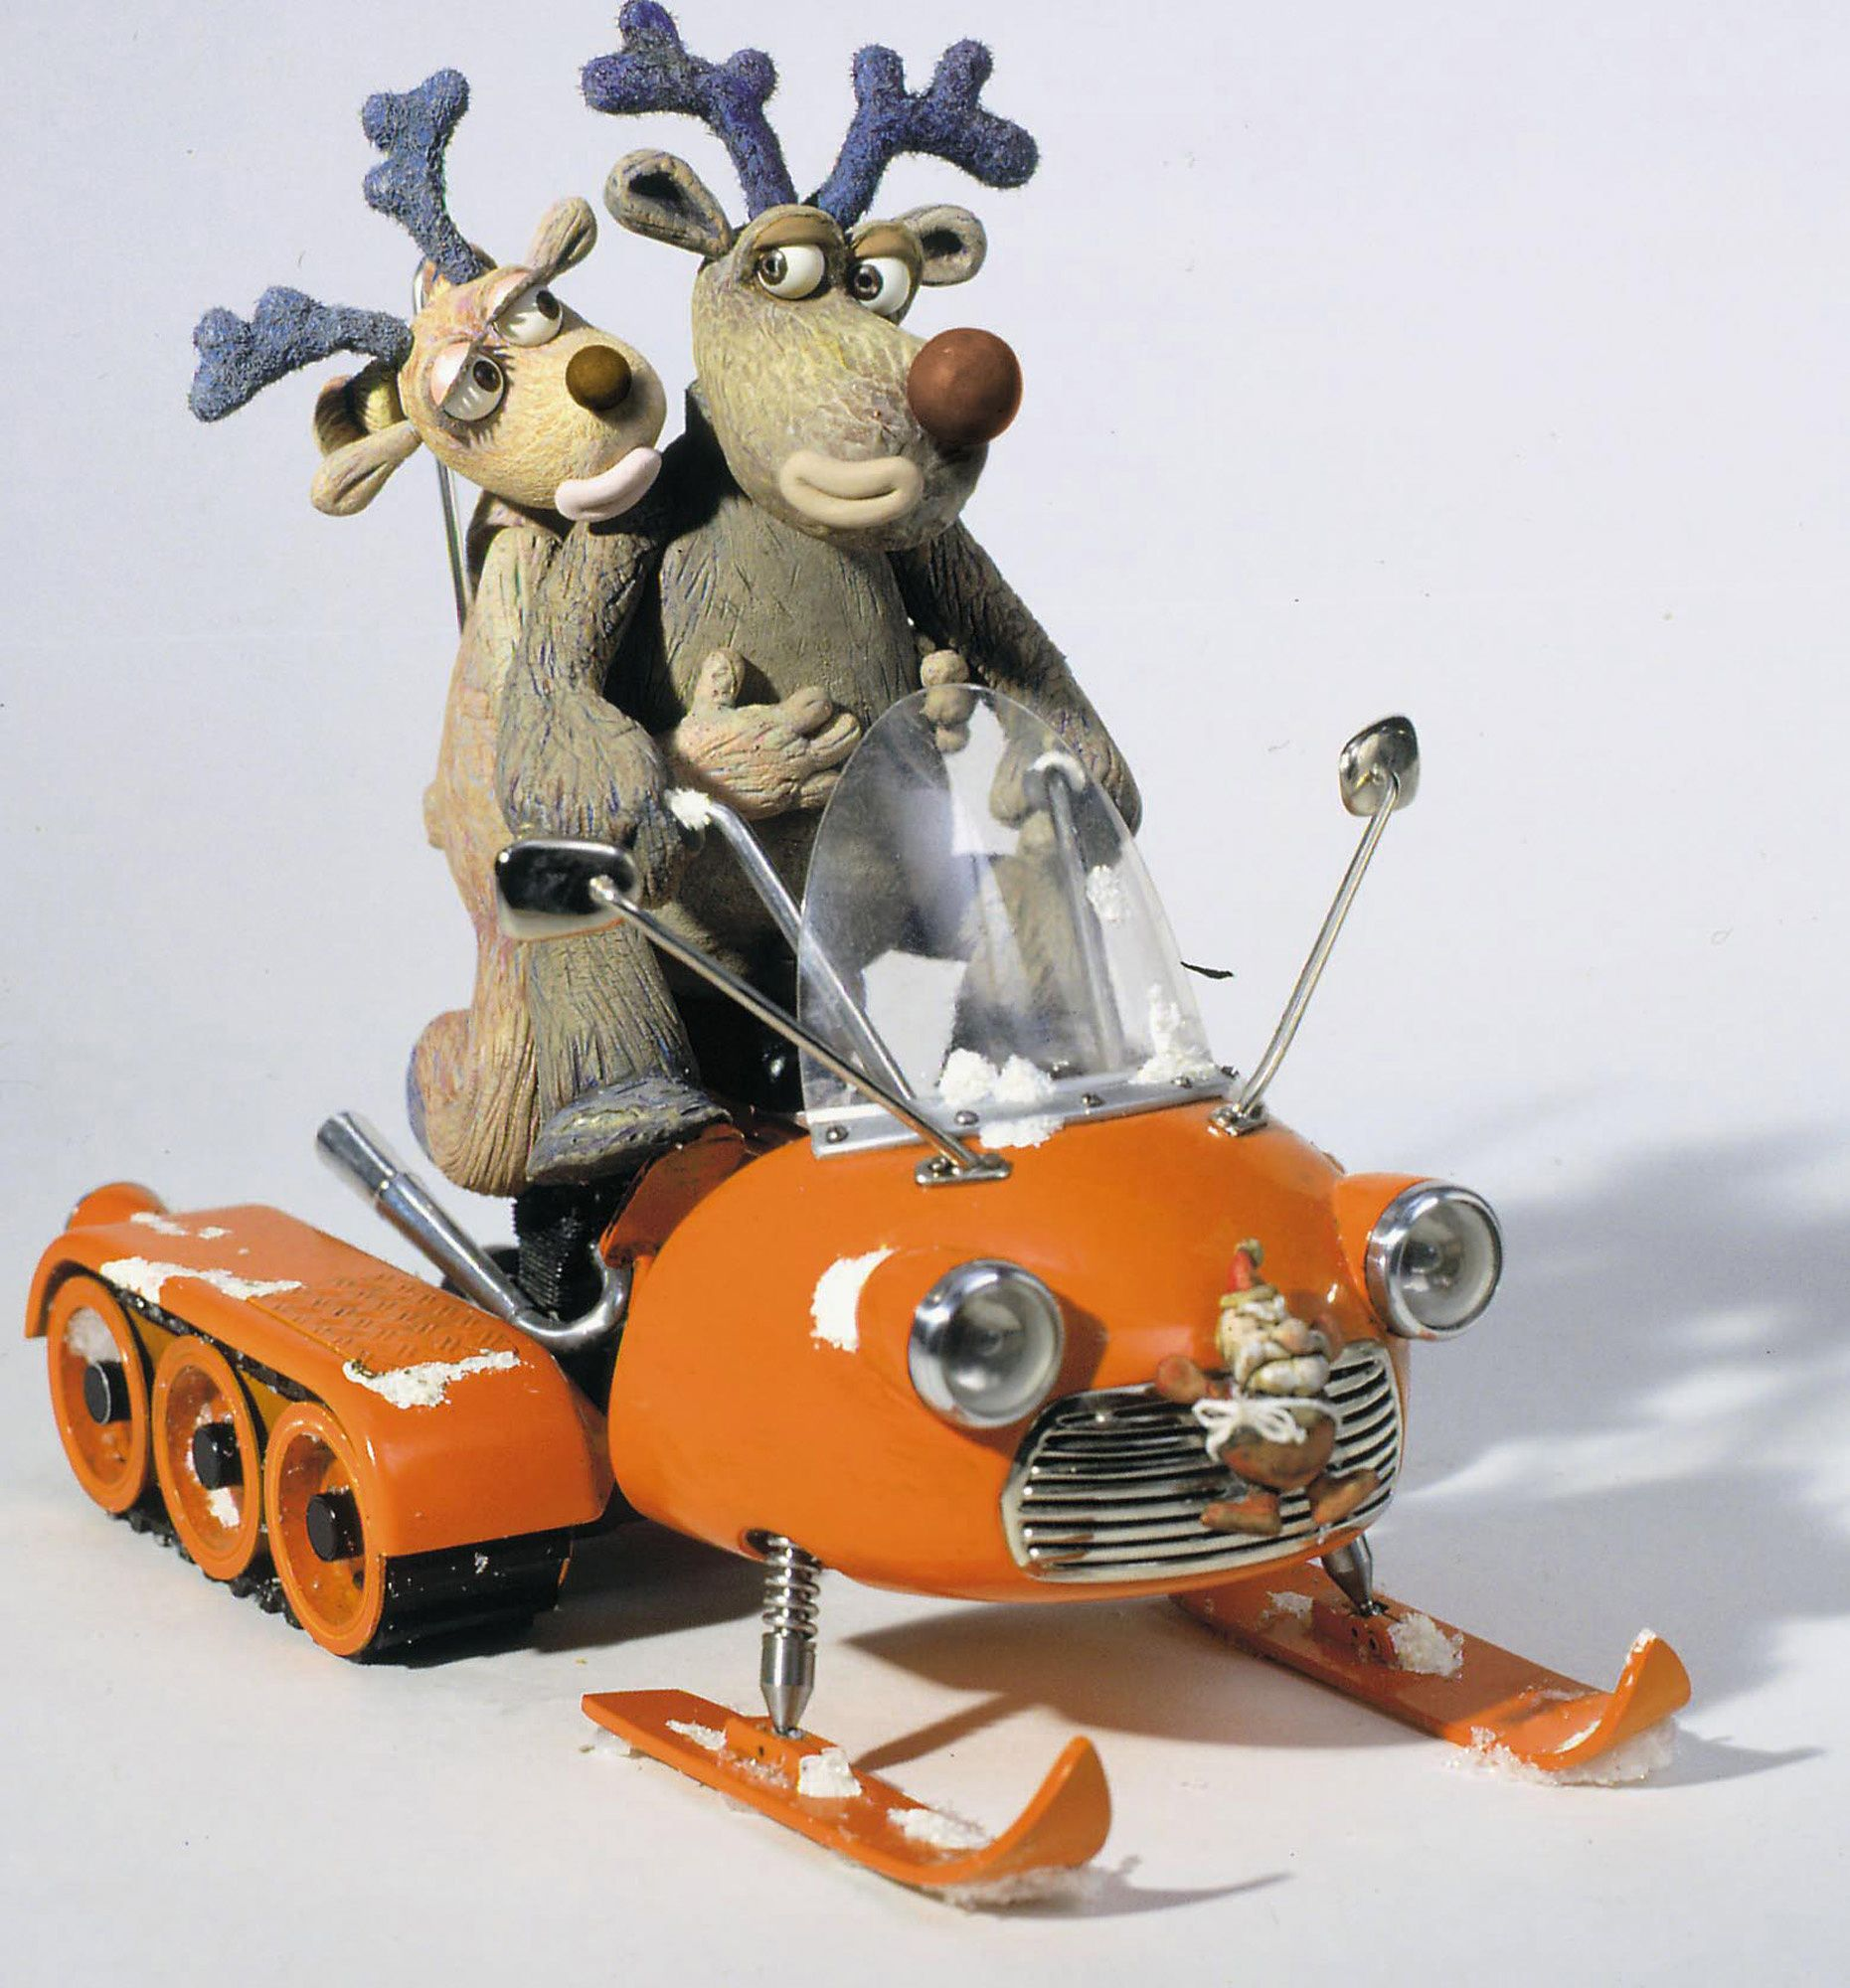 Robbie the Reindeer on a snowmobile